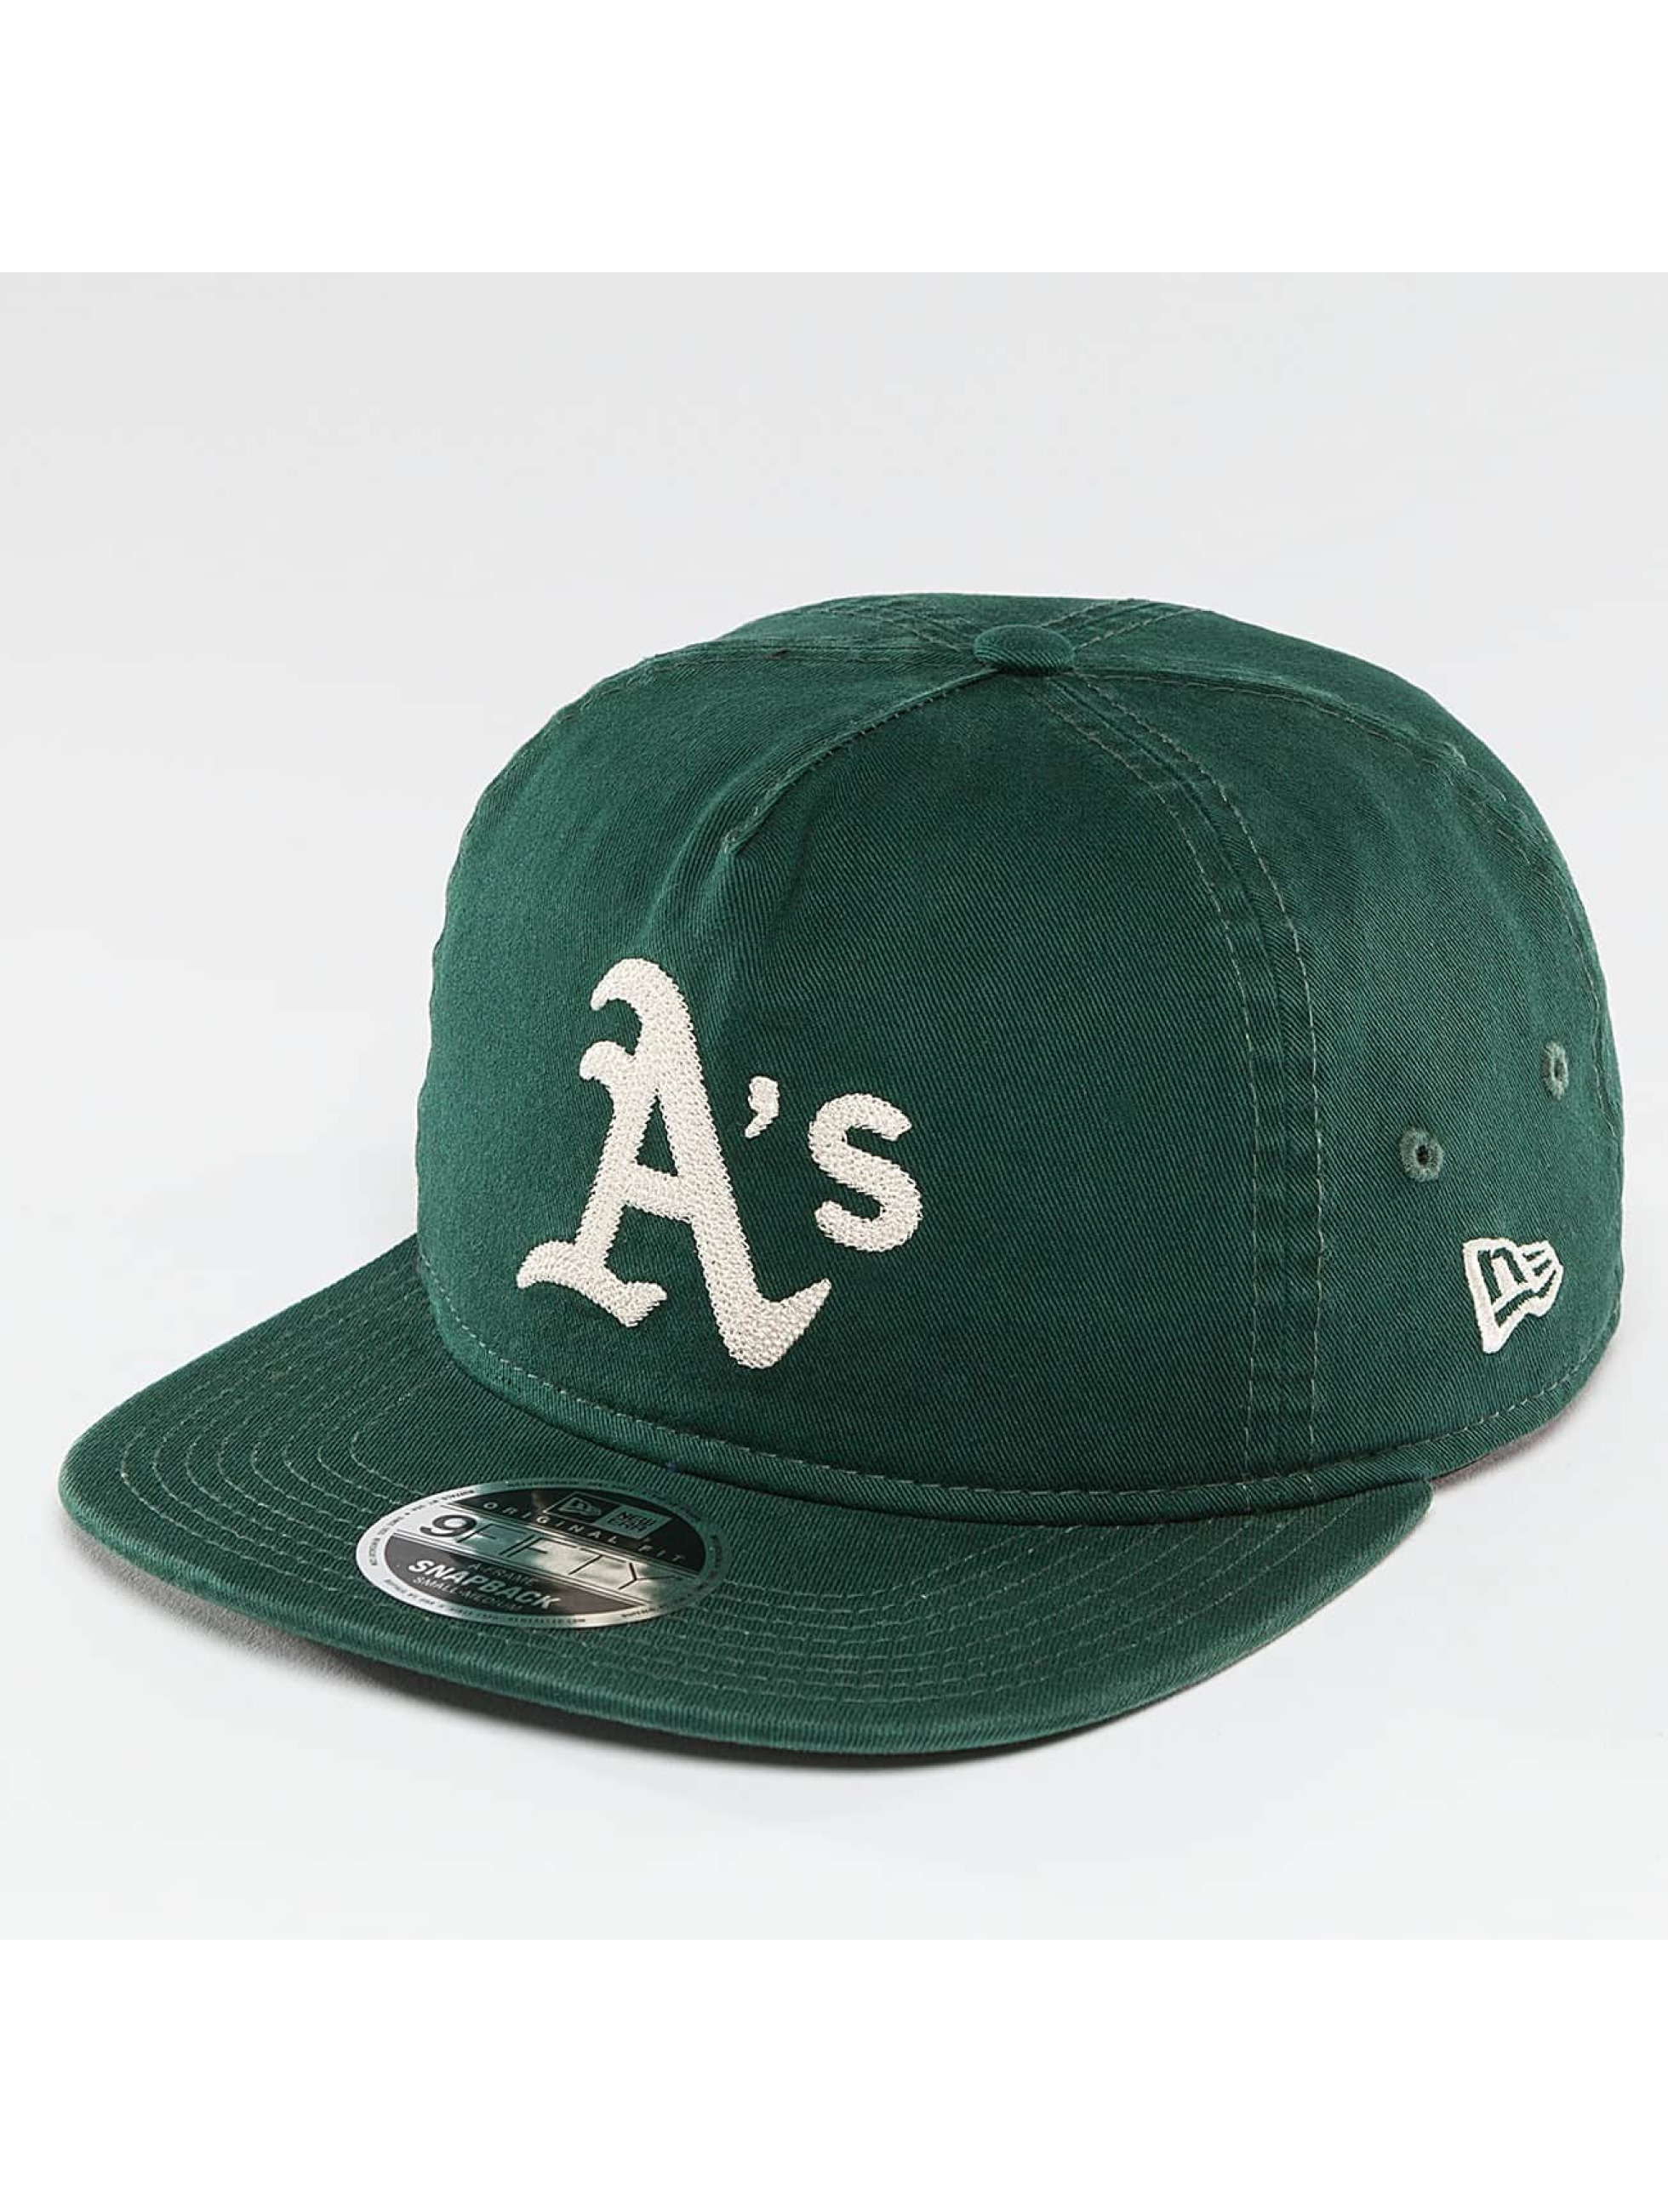 New Era Männer Snapback Cap Chain Stitch Oakland Athletics in grün Sale Angebote Burg (Spreewald)